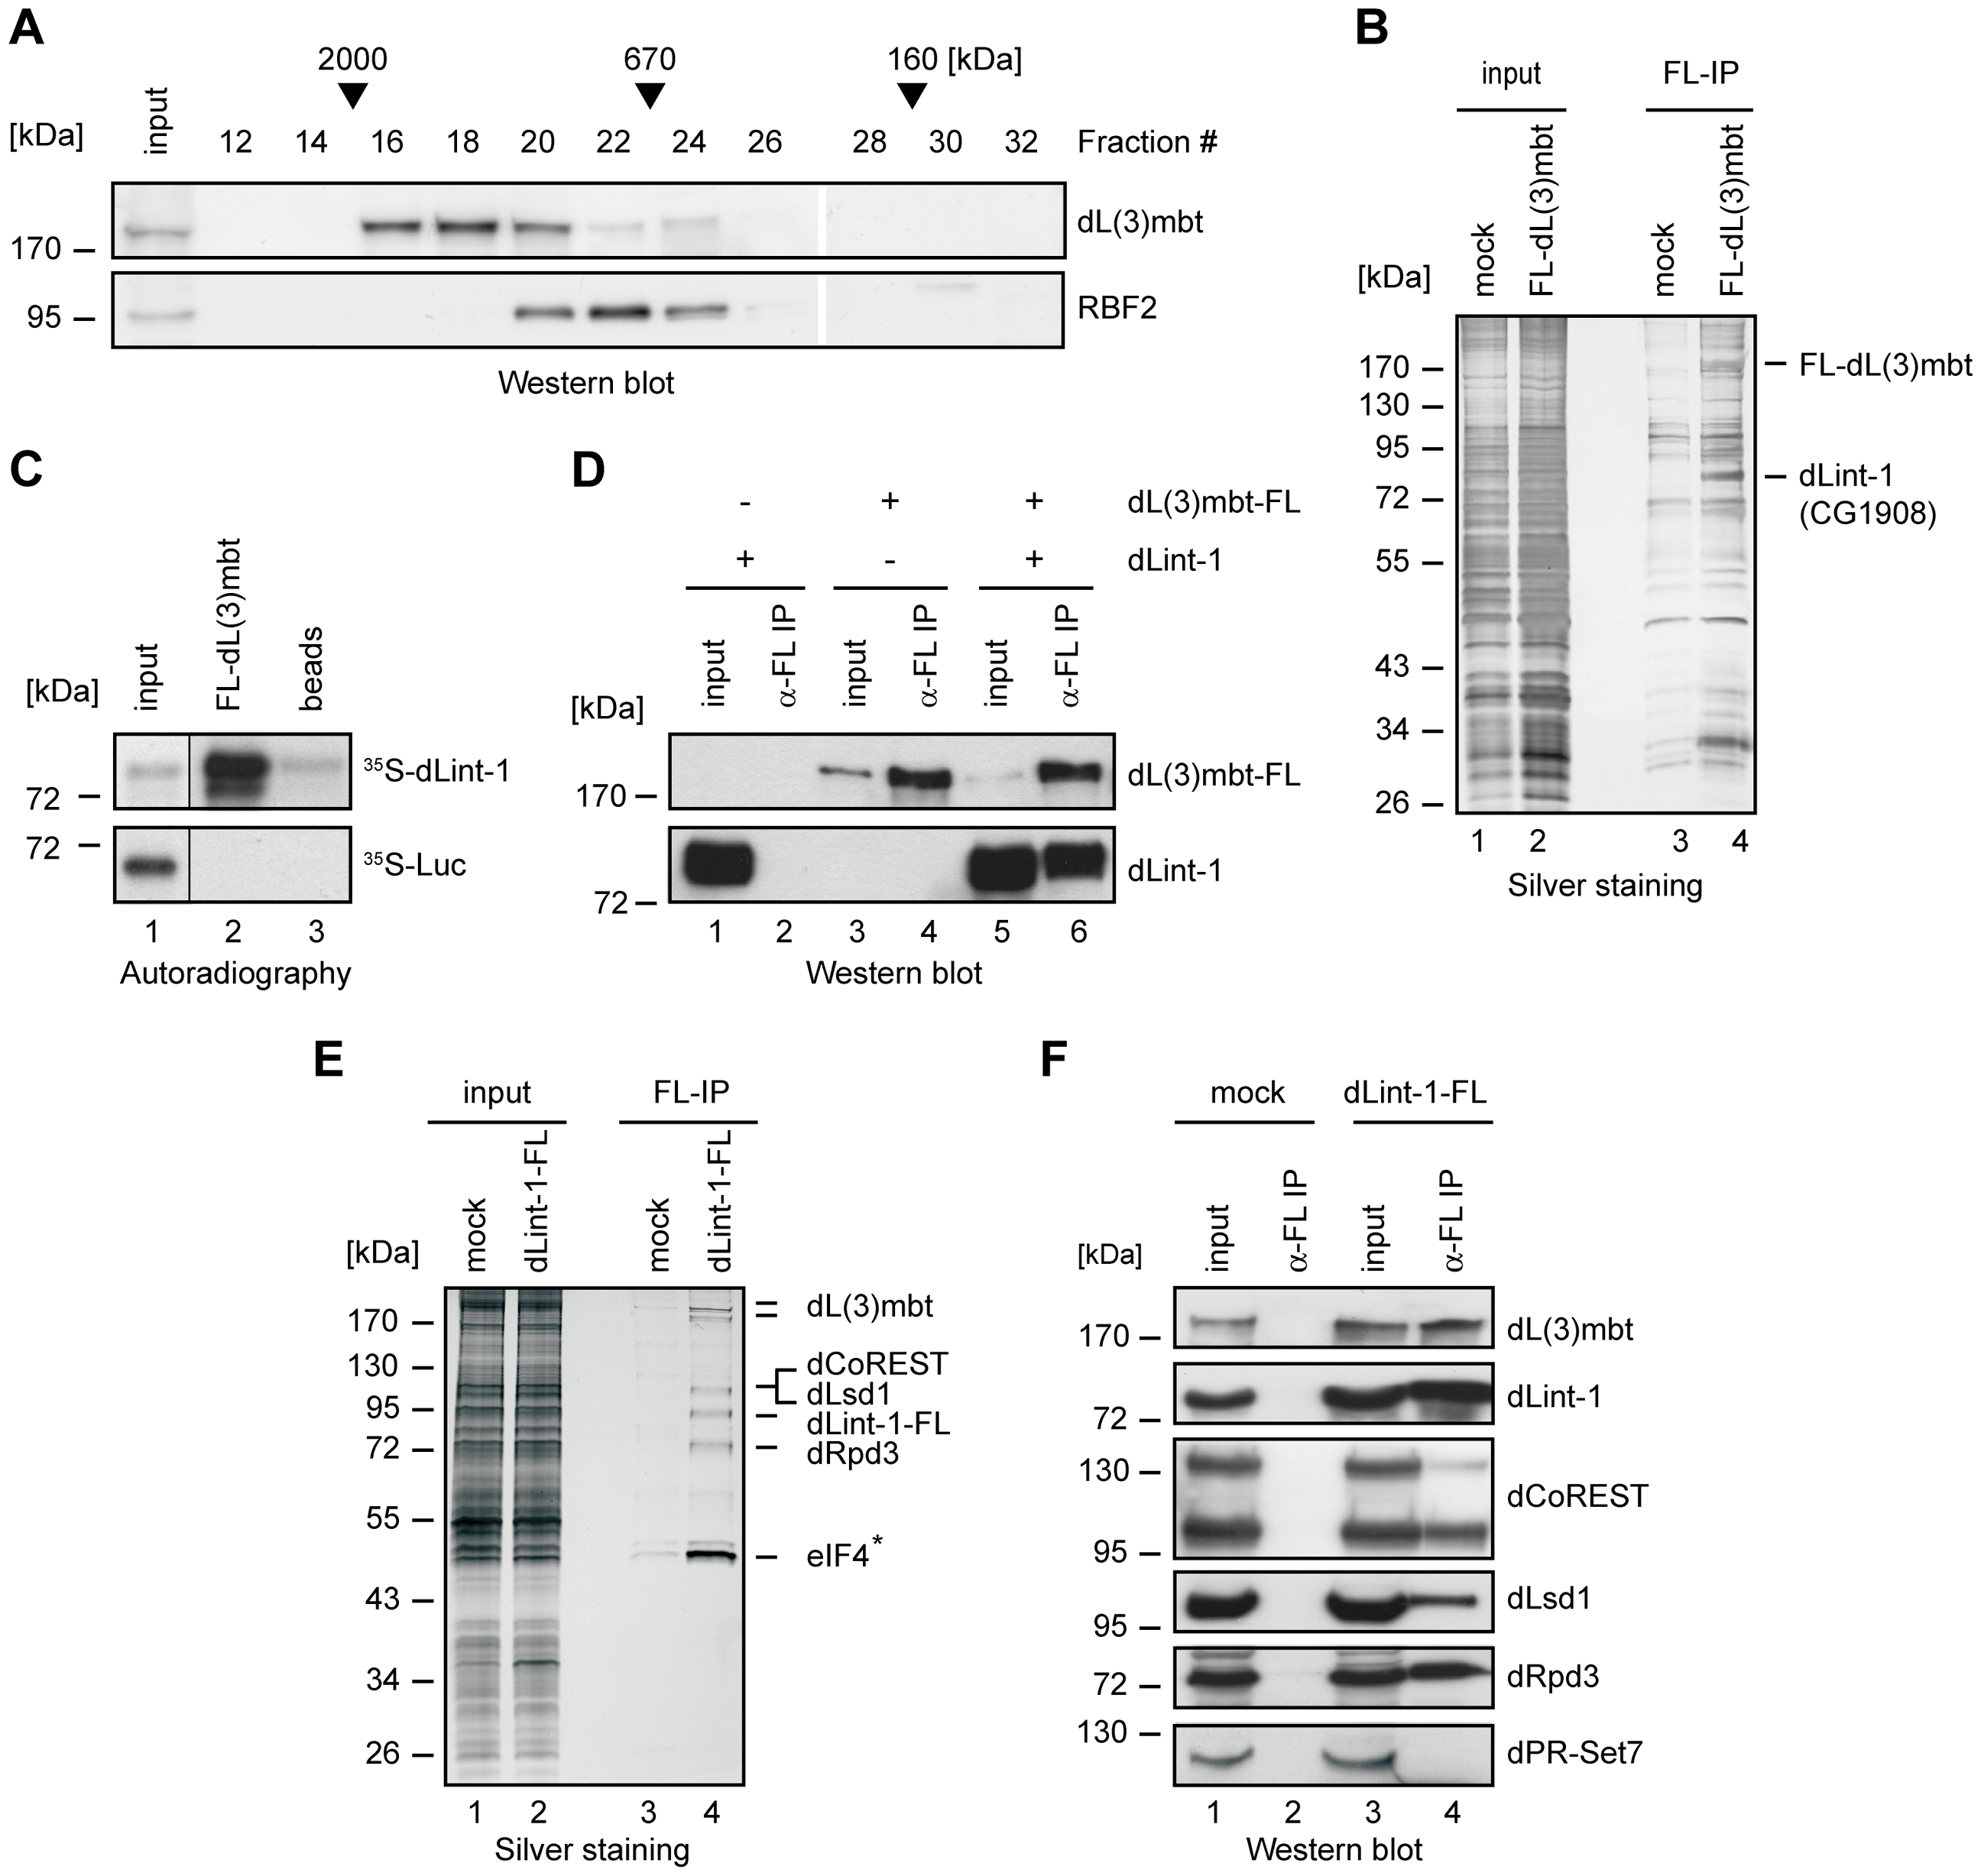 dLint-1 is a novel dL(3)mbt–interacting protein.